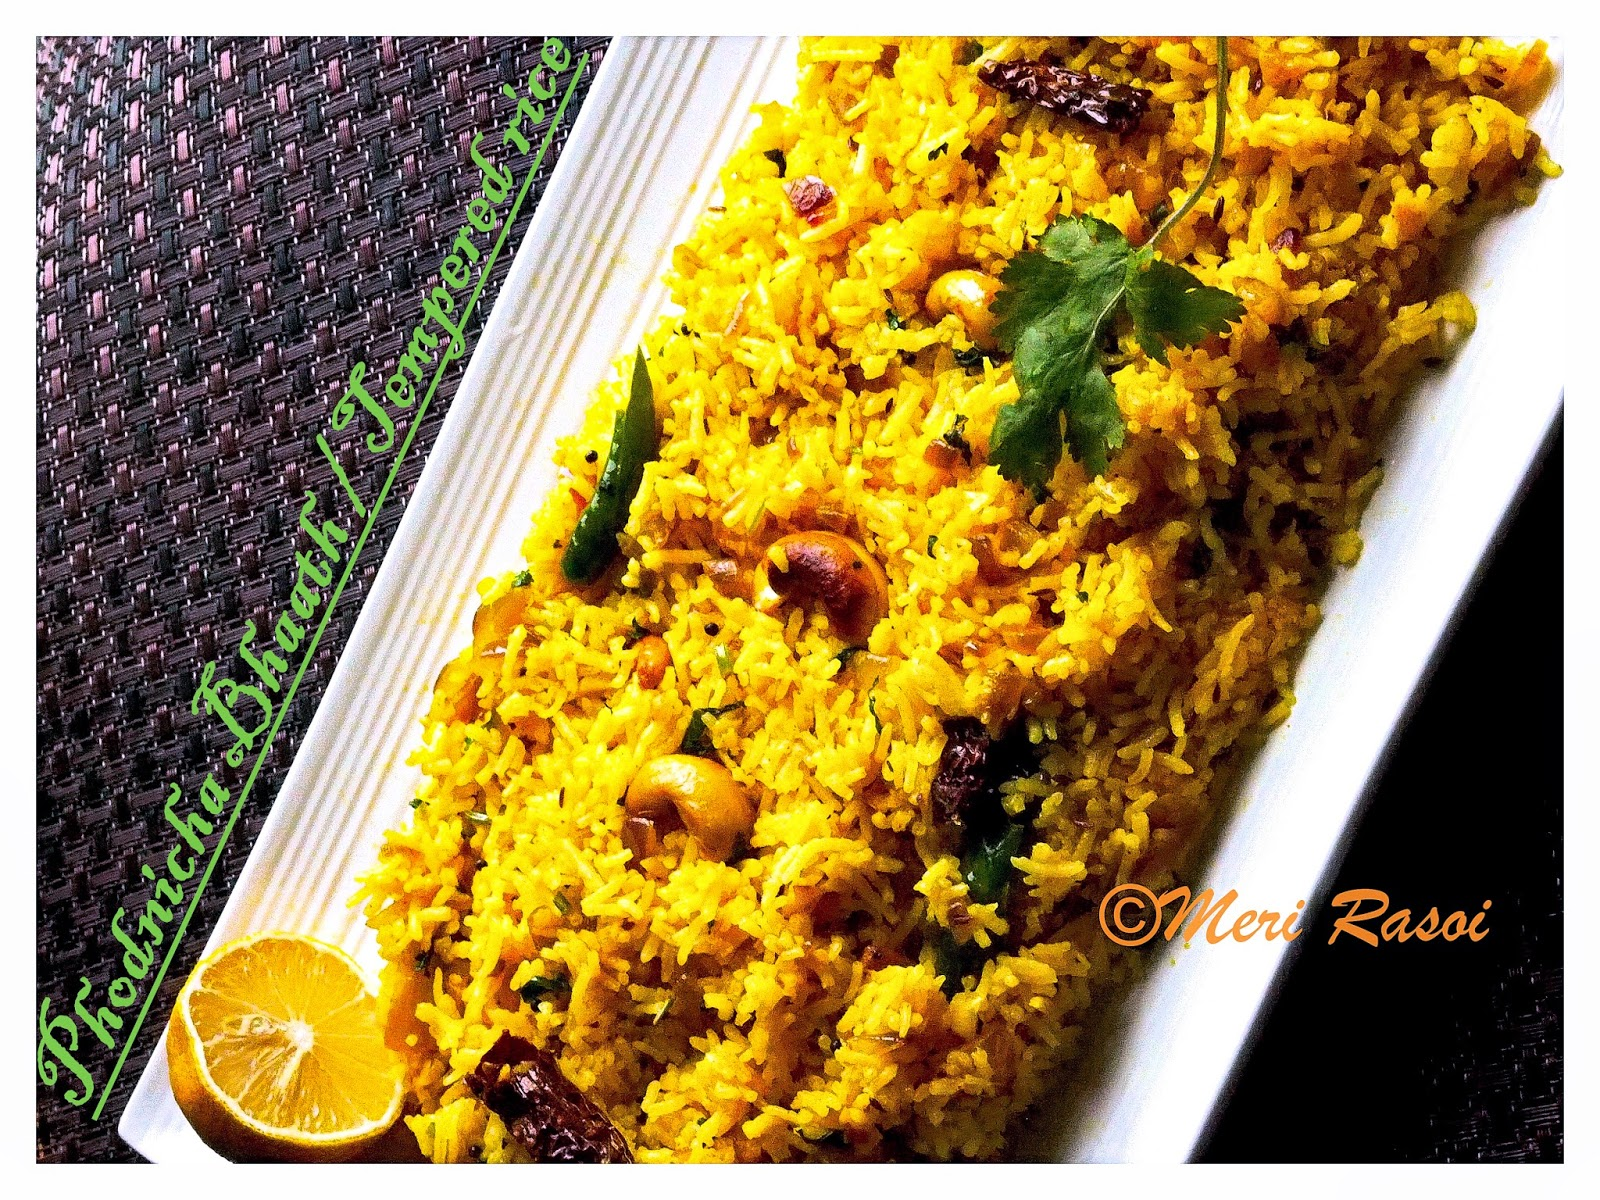 Meri rasoi phodnicha bhaath tempered rice a maharashtrian rice dish i grew up in mumbai the capital city of indian state maharashtra i have a special liking for the maharashtrian cuisine which is very flavorful forumfinder Image collections